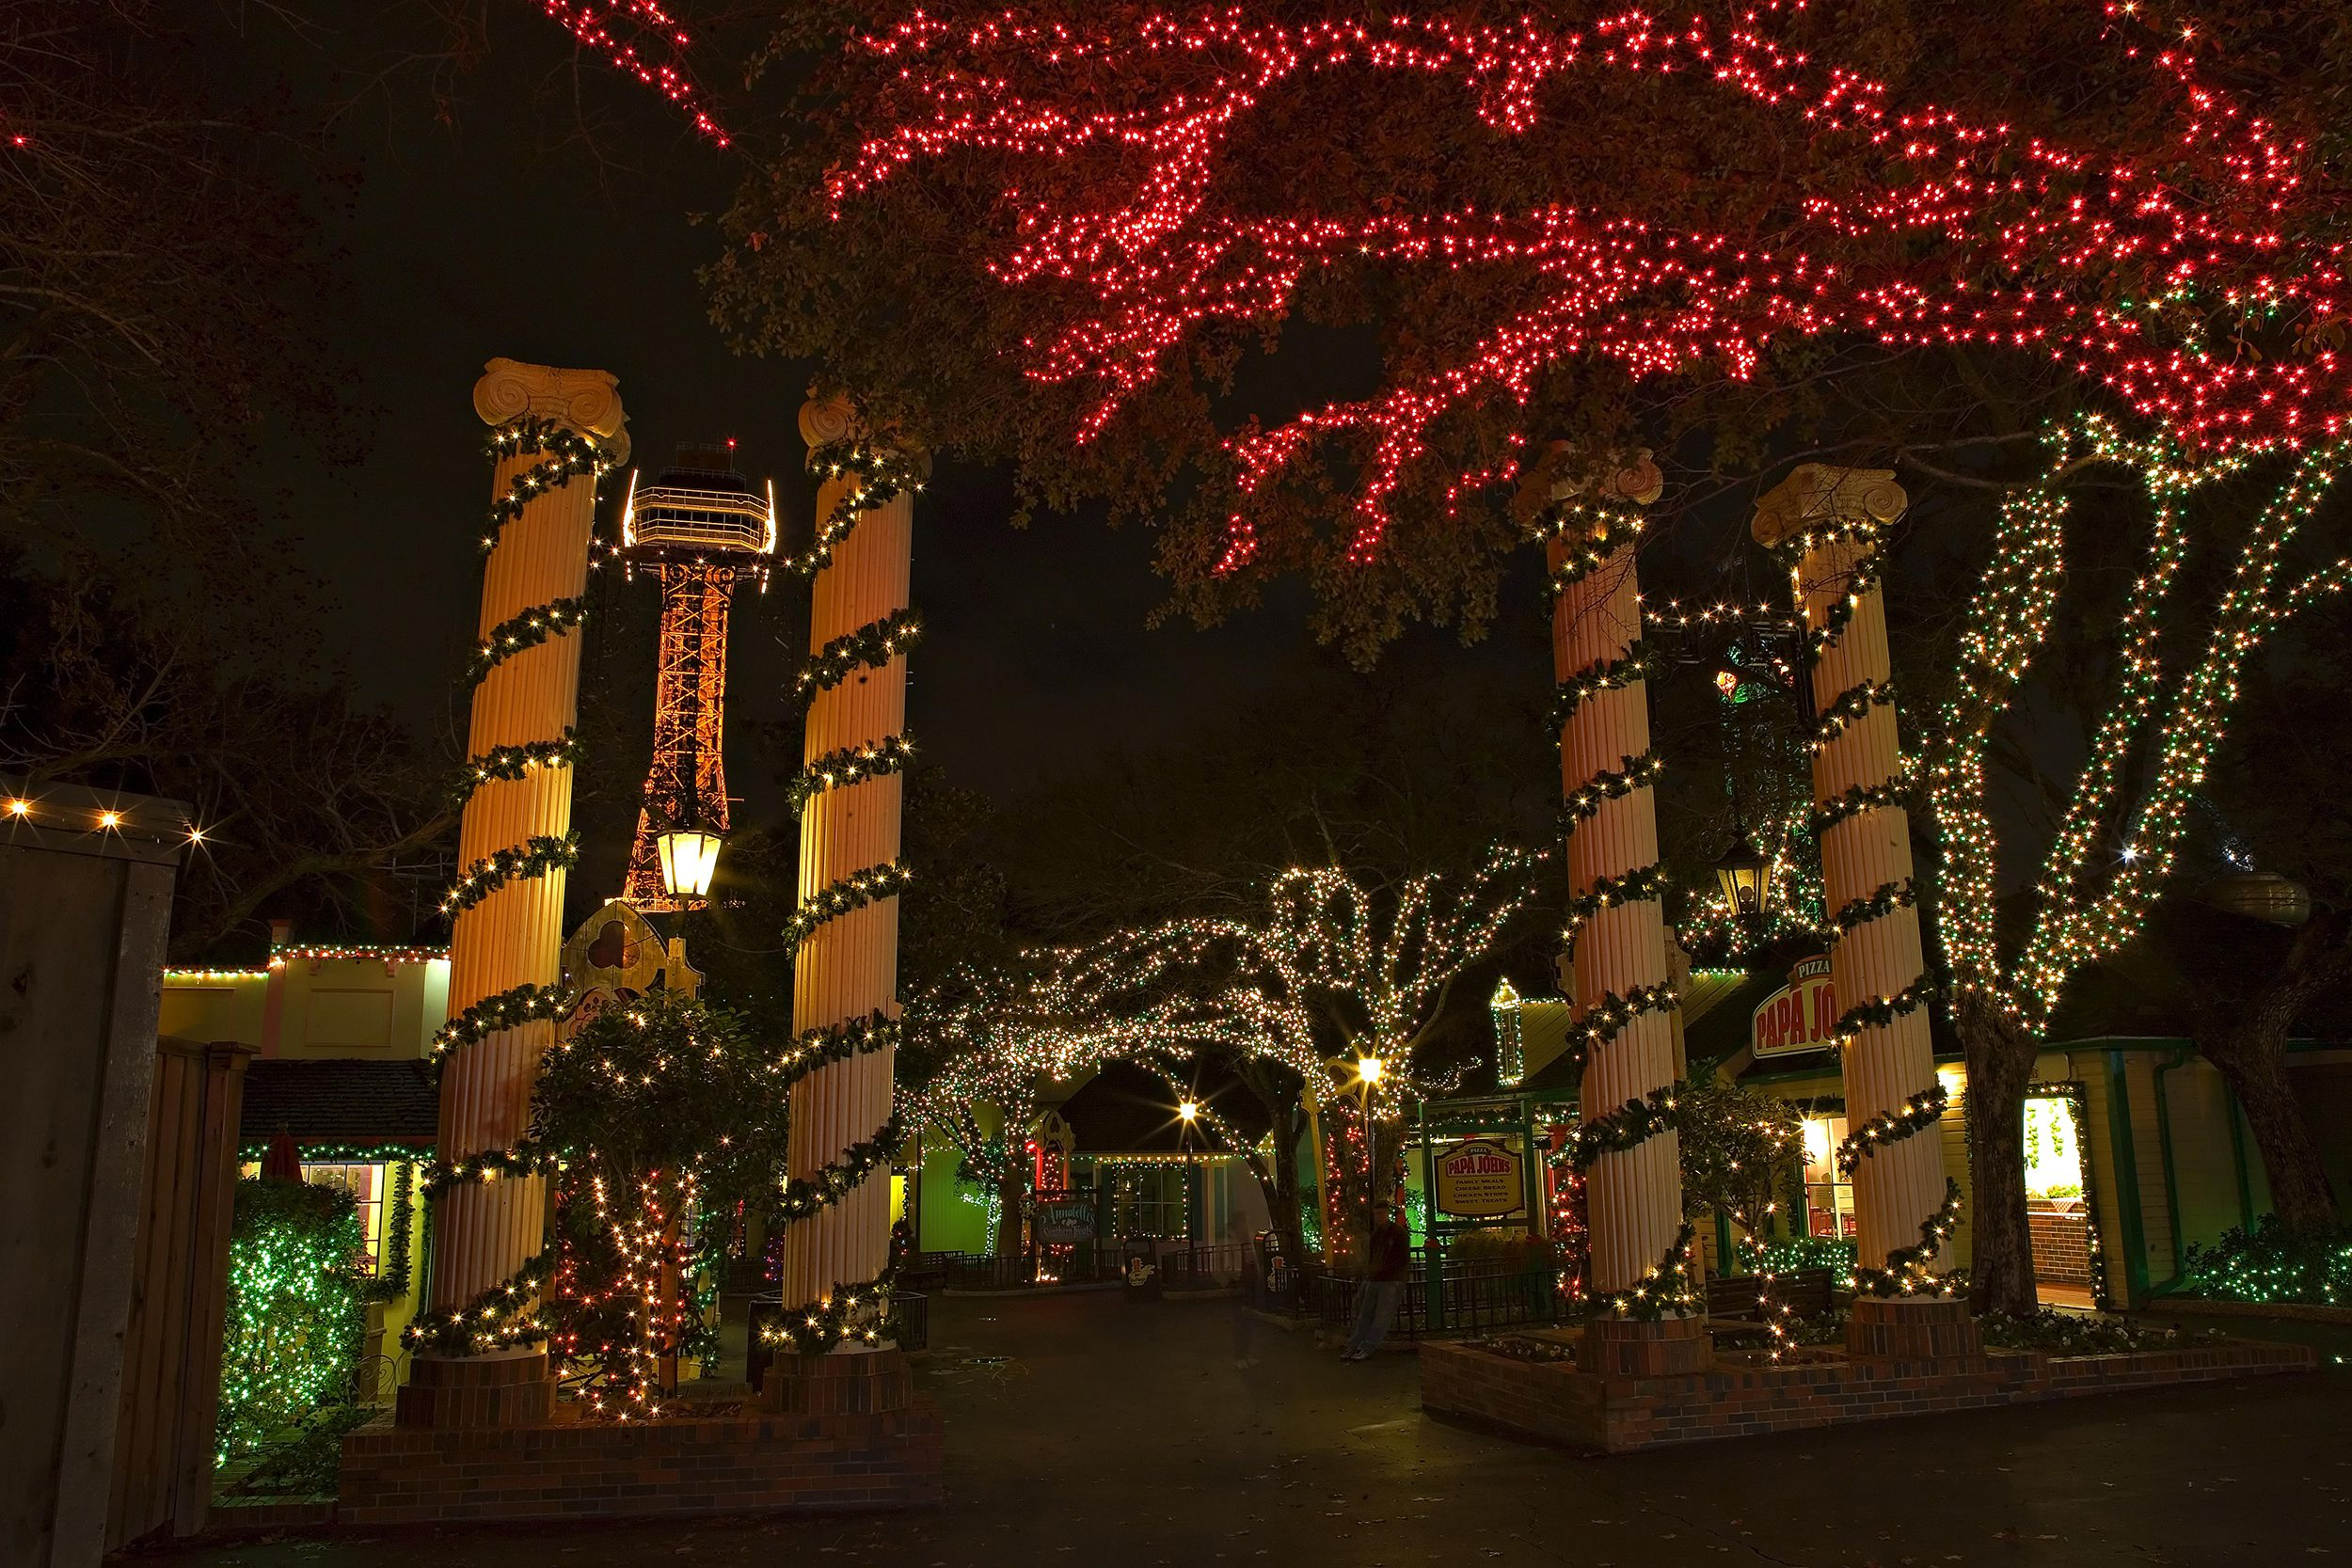 Celebrate Christmas at Six Flags in 2018